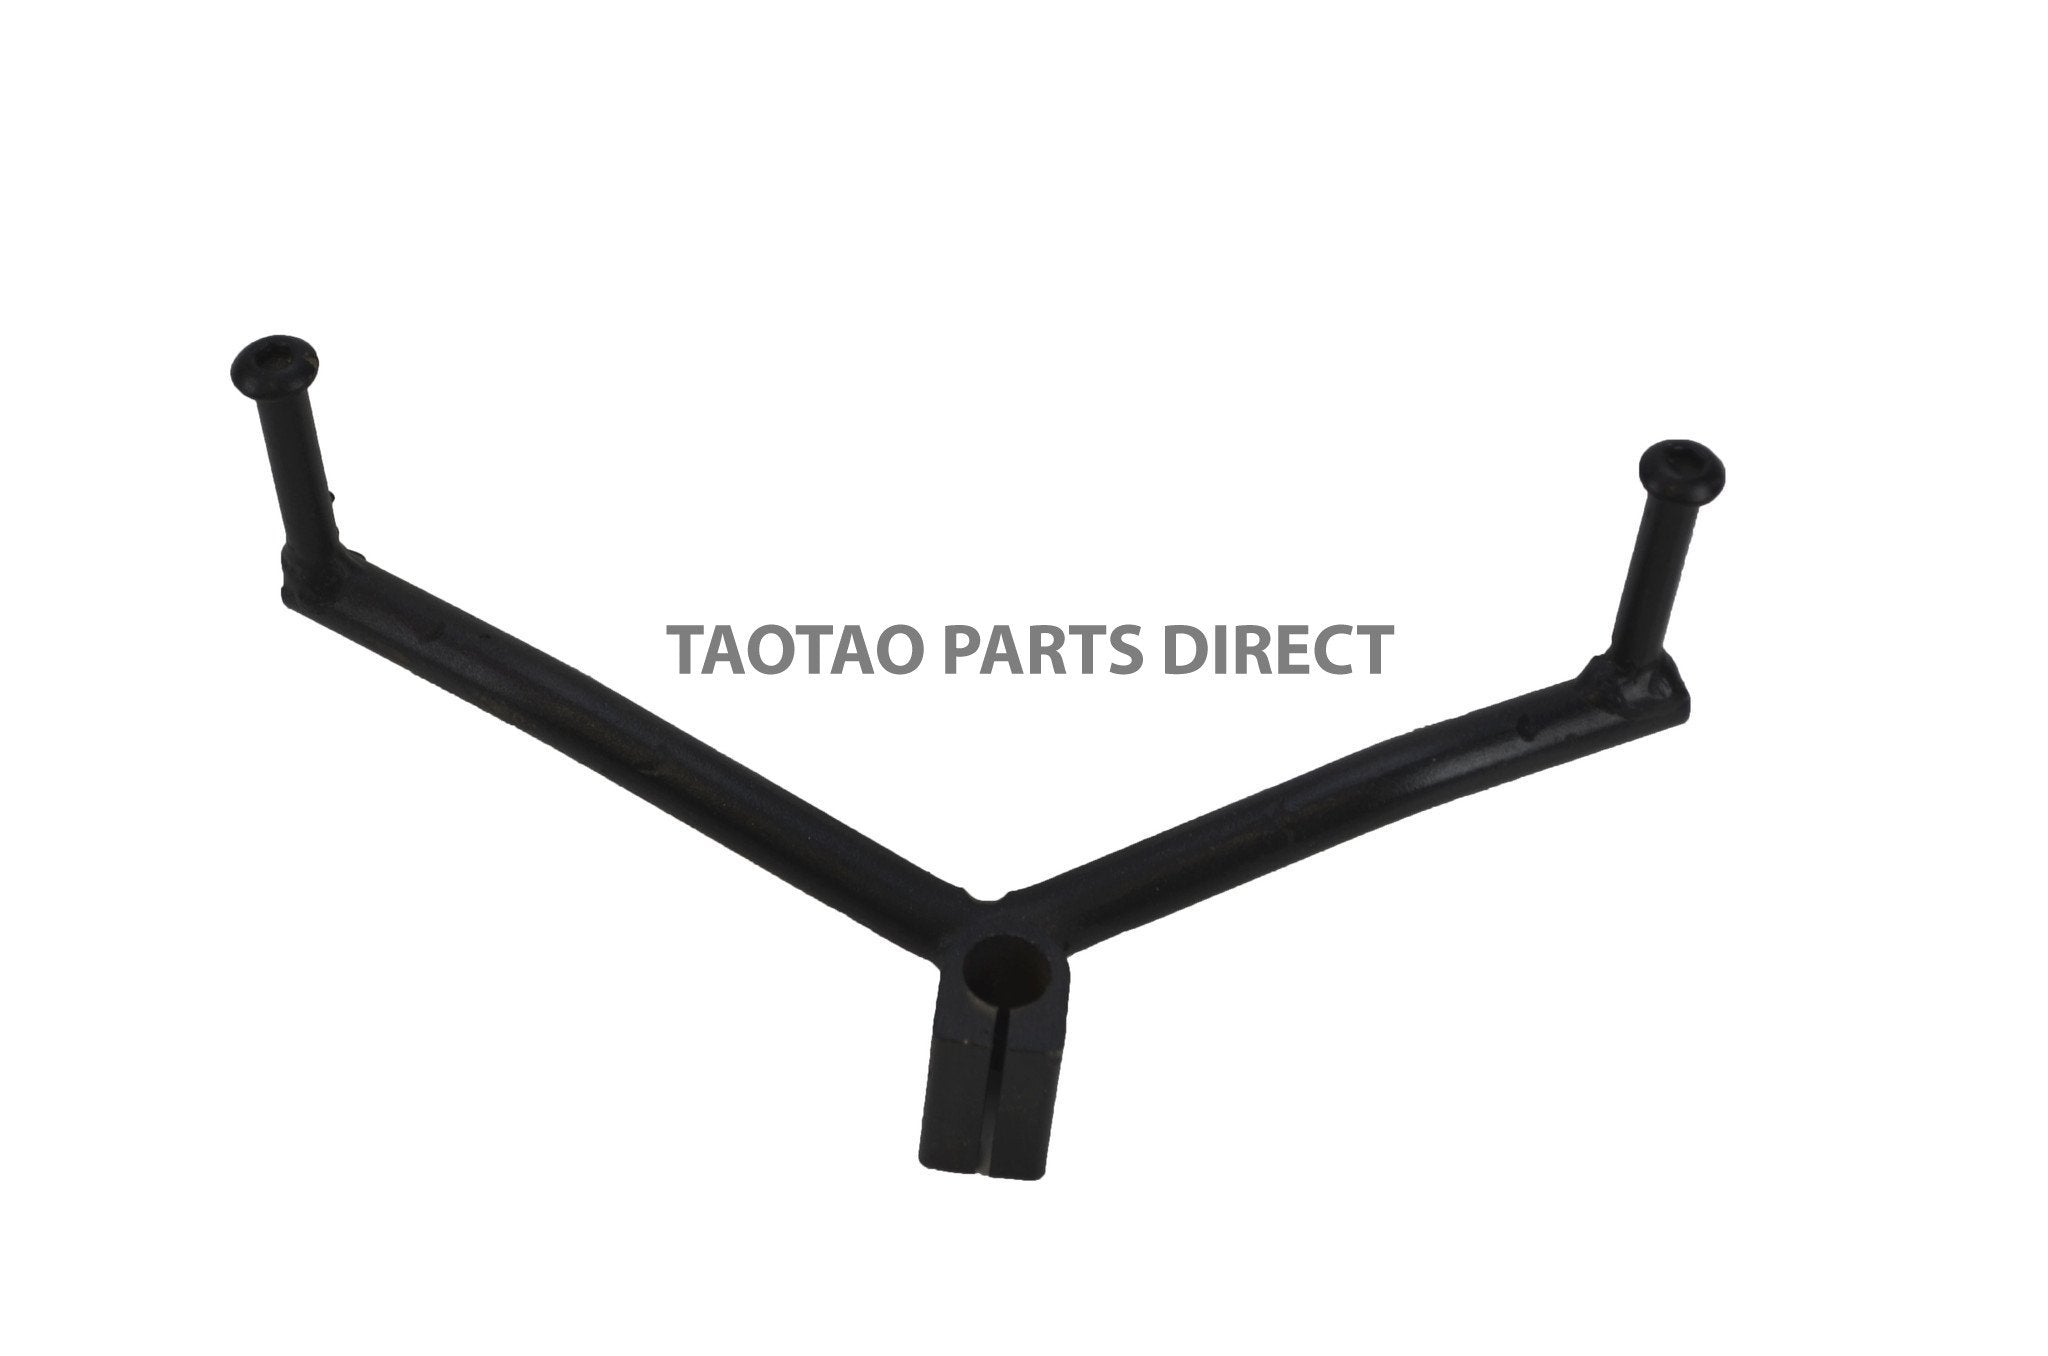 ATA125G Shift Lever - TaoTaoPartsDirect.com